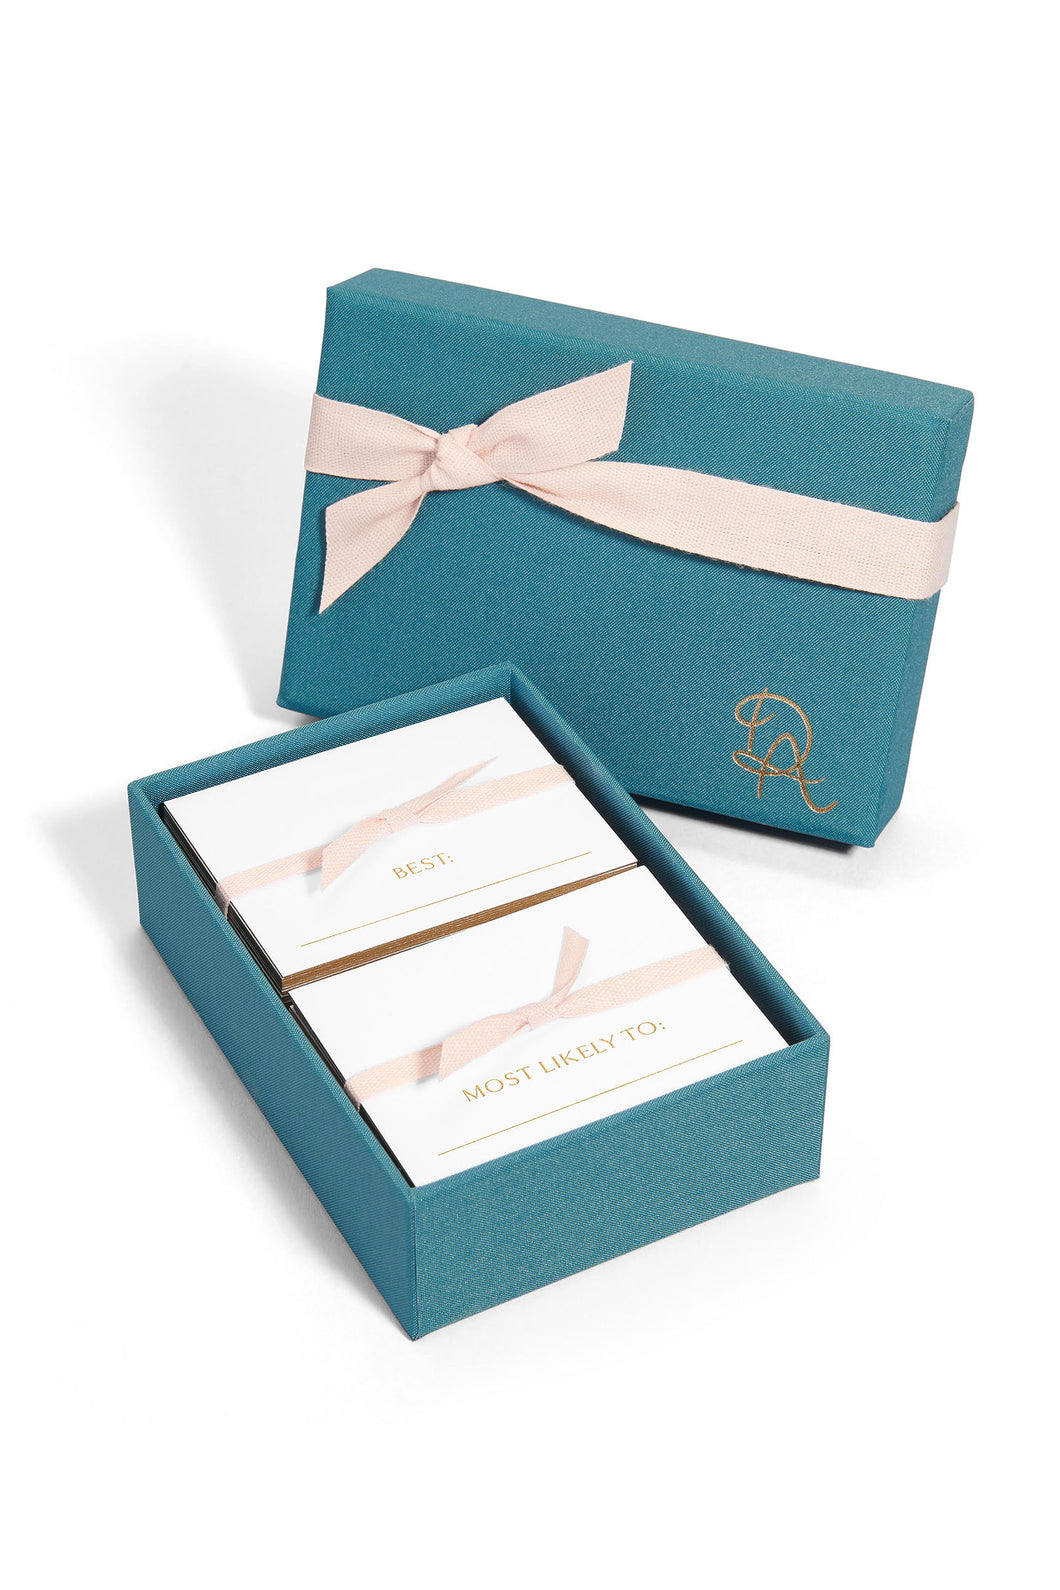 Dear Annabelle Superlative Place Cards